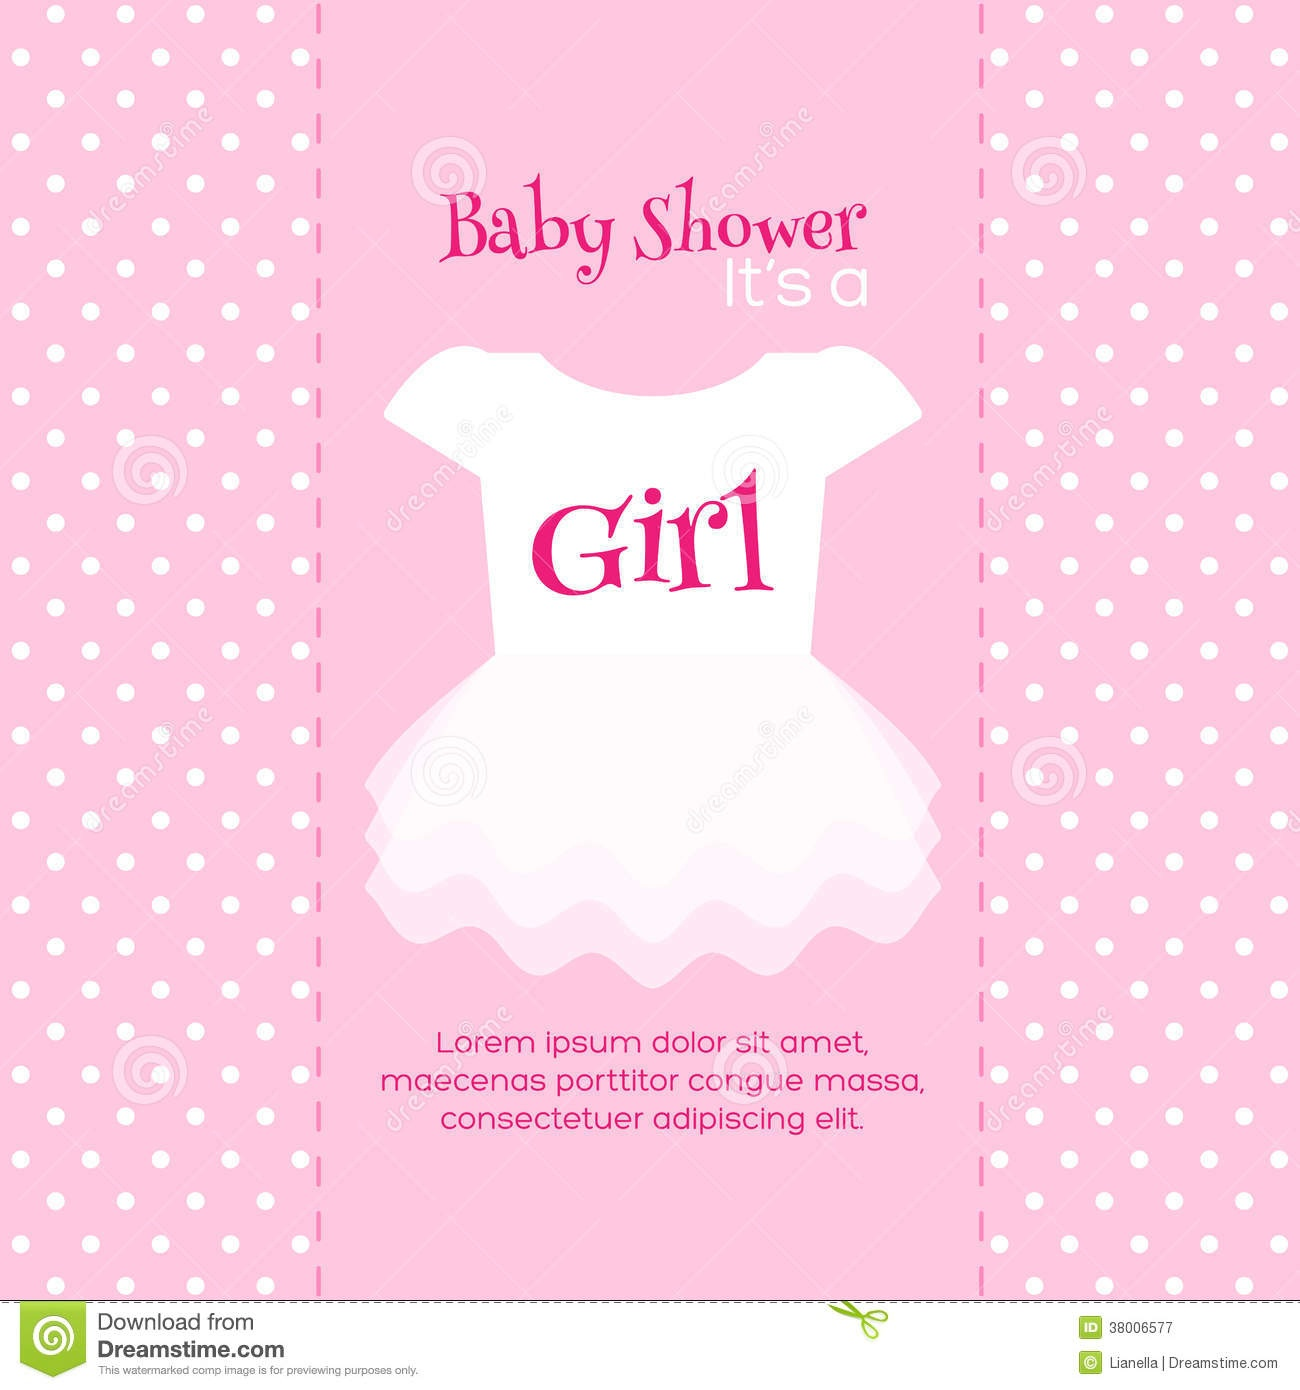 Baby Shower Invitation Template Stock Vector - Illustration Of - Free Printable Baby Shower Cards Templates